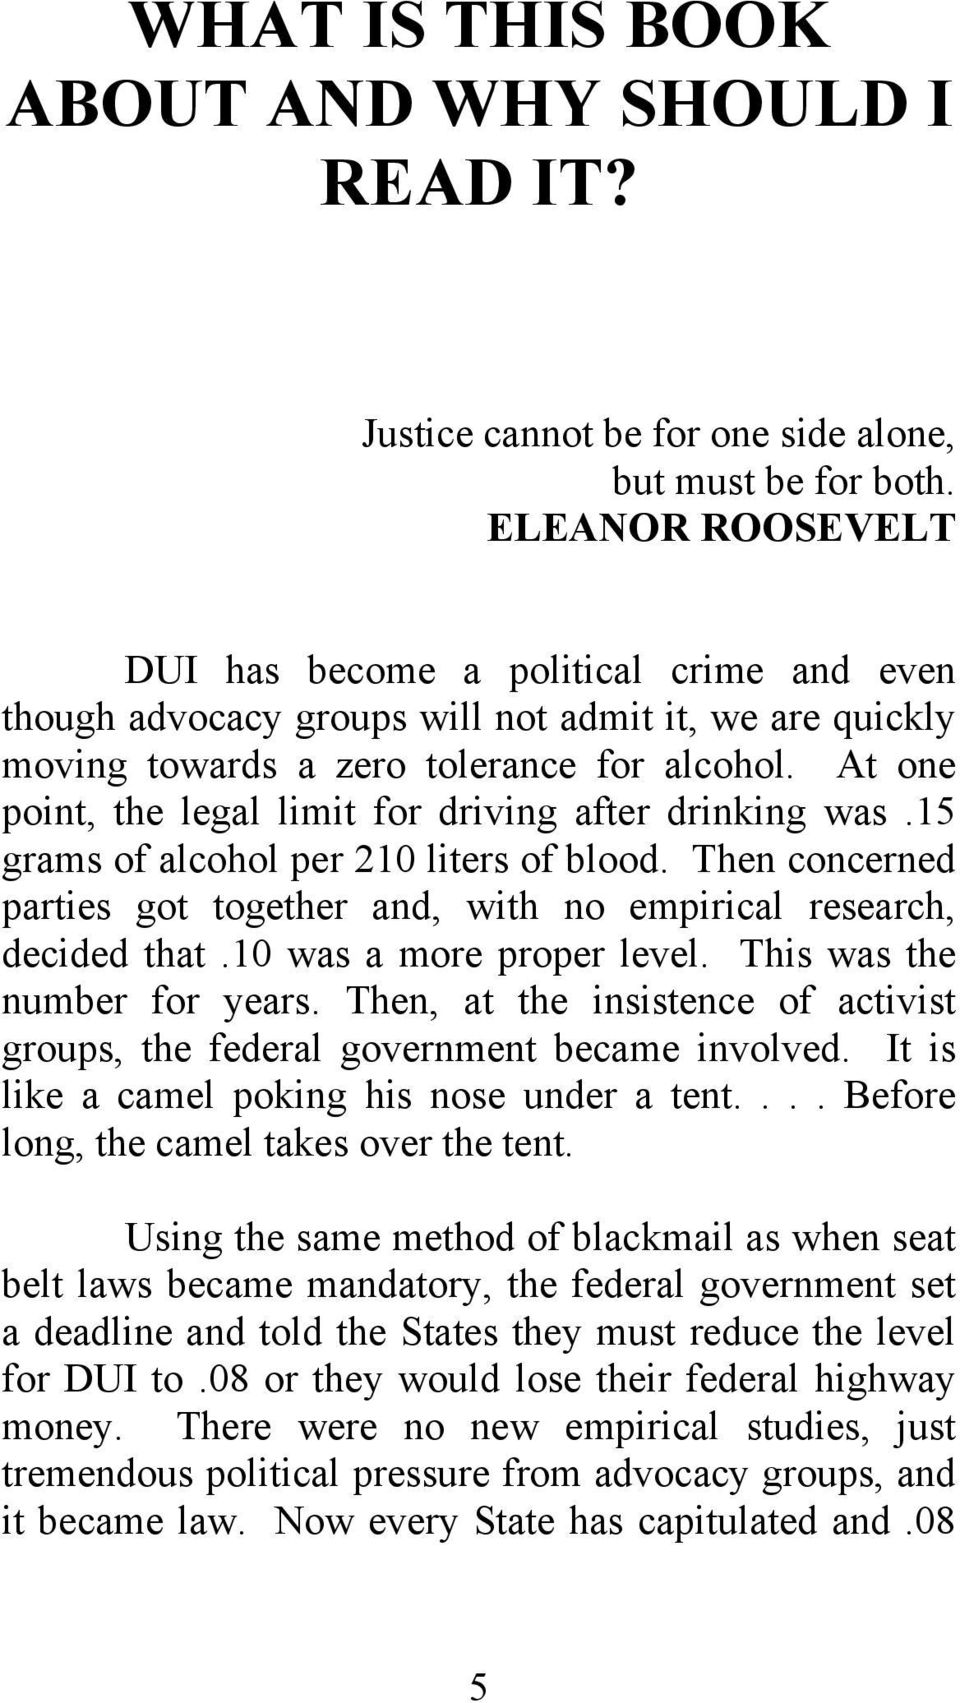 At one point, the legal limit for driving after drinking was.15 grams of alcohol per 210 liters of blood. Then concerned parties got together and, with no empirical research, decided that.